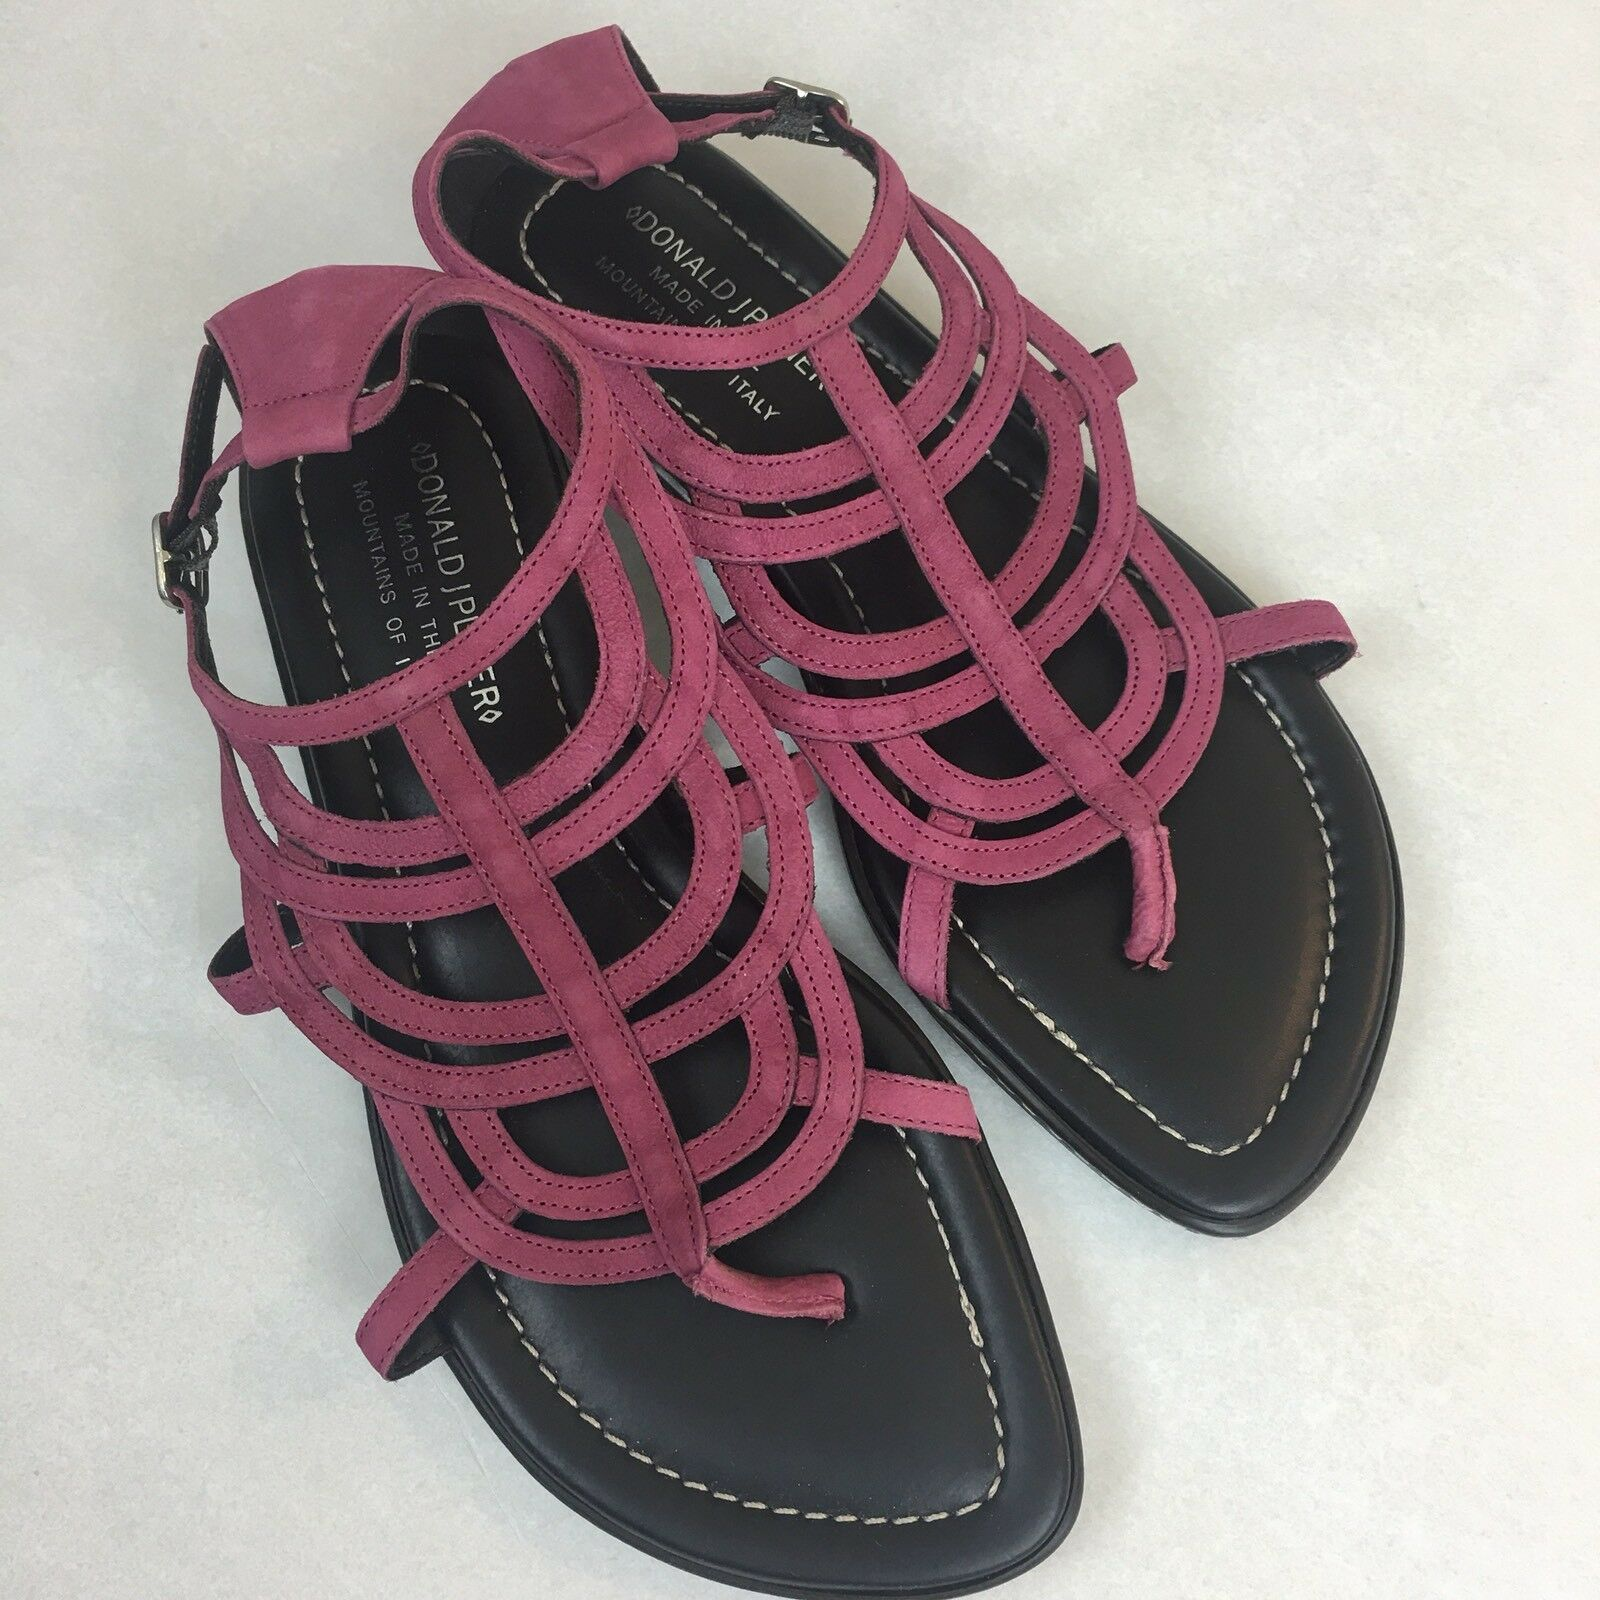 Donald J Pliner Women's  Made Gladiator Sandals Size 7M